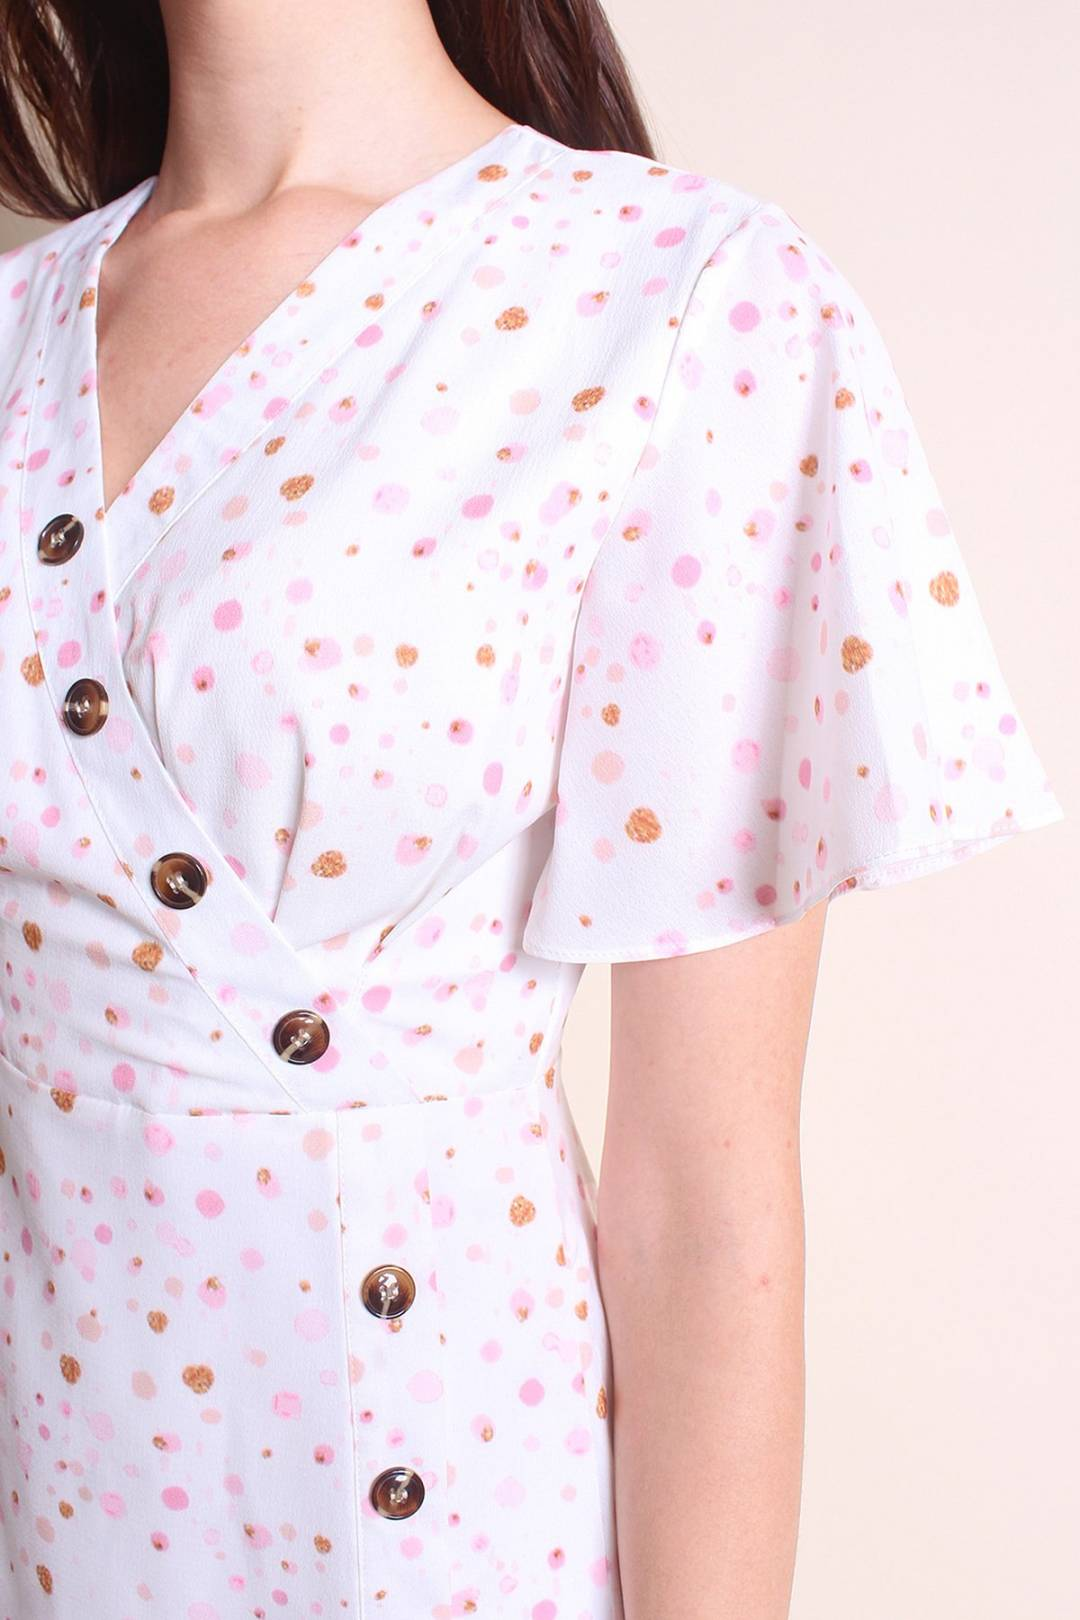 MADEBYNM MAYUMI BUTTONS SLEEVE HI-LO DRESS IN JOLLY WHITE [XS/S/M/L]